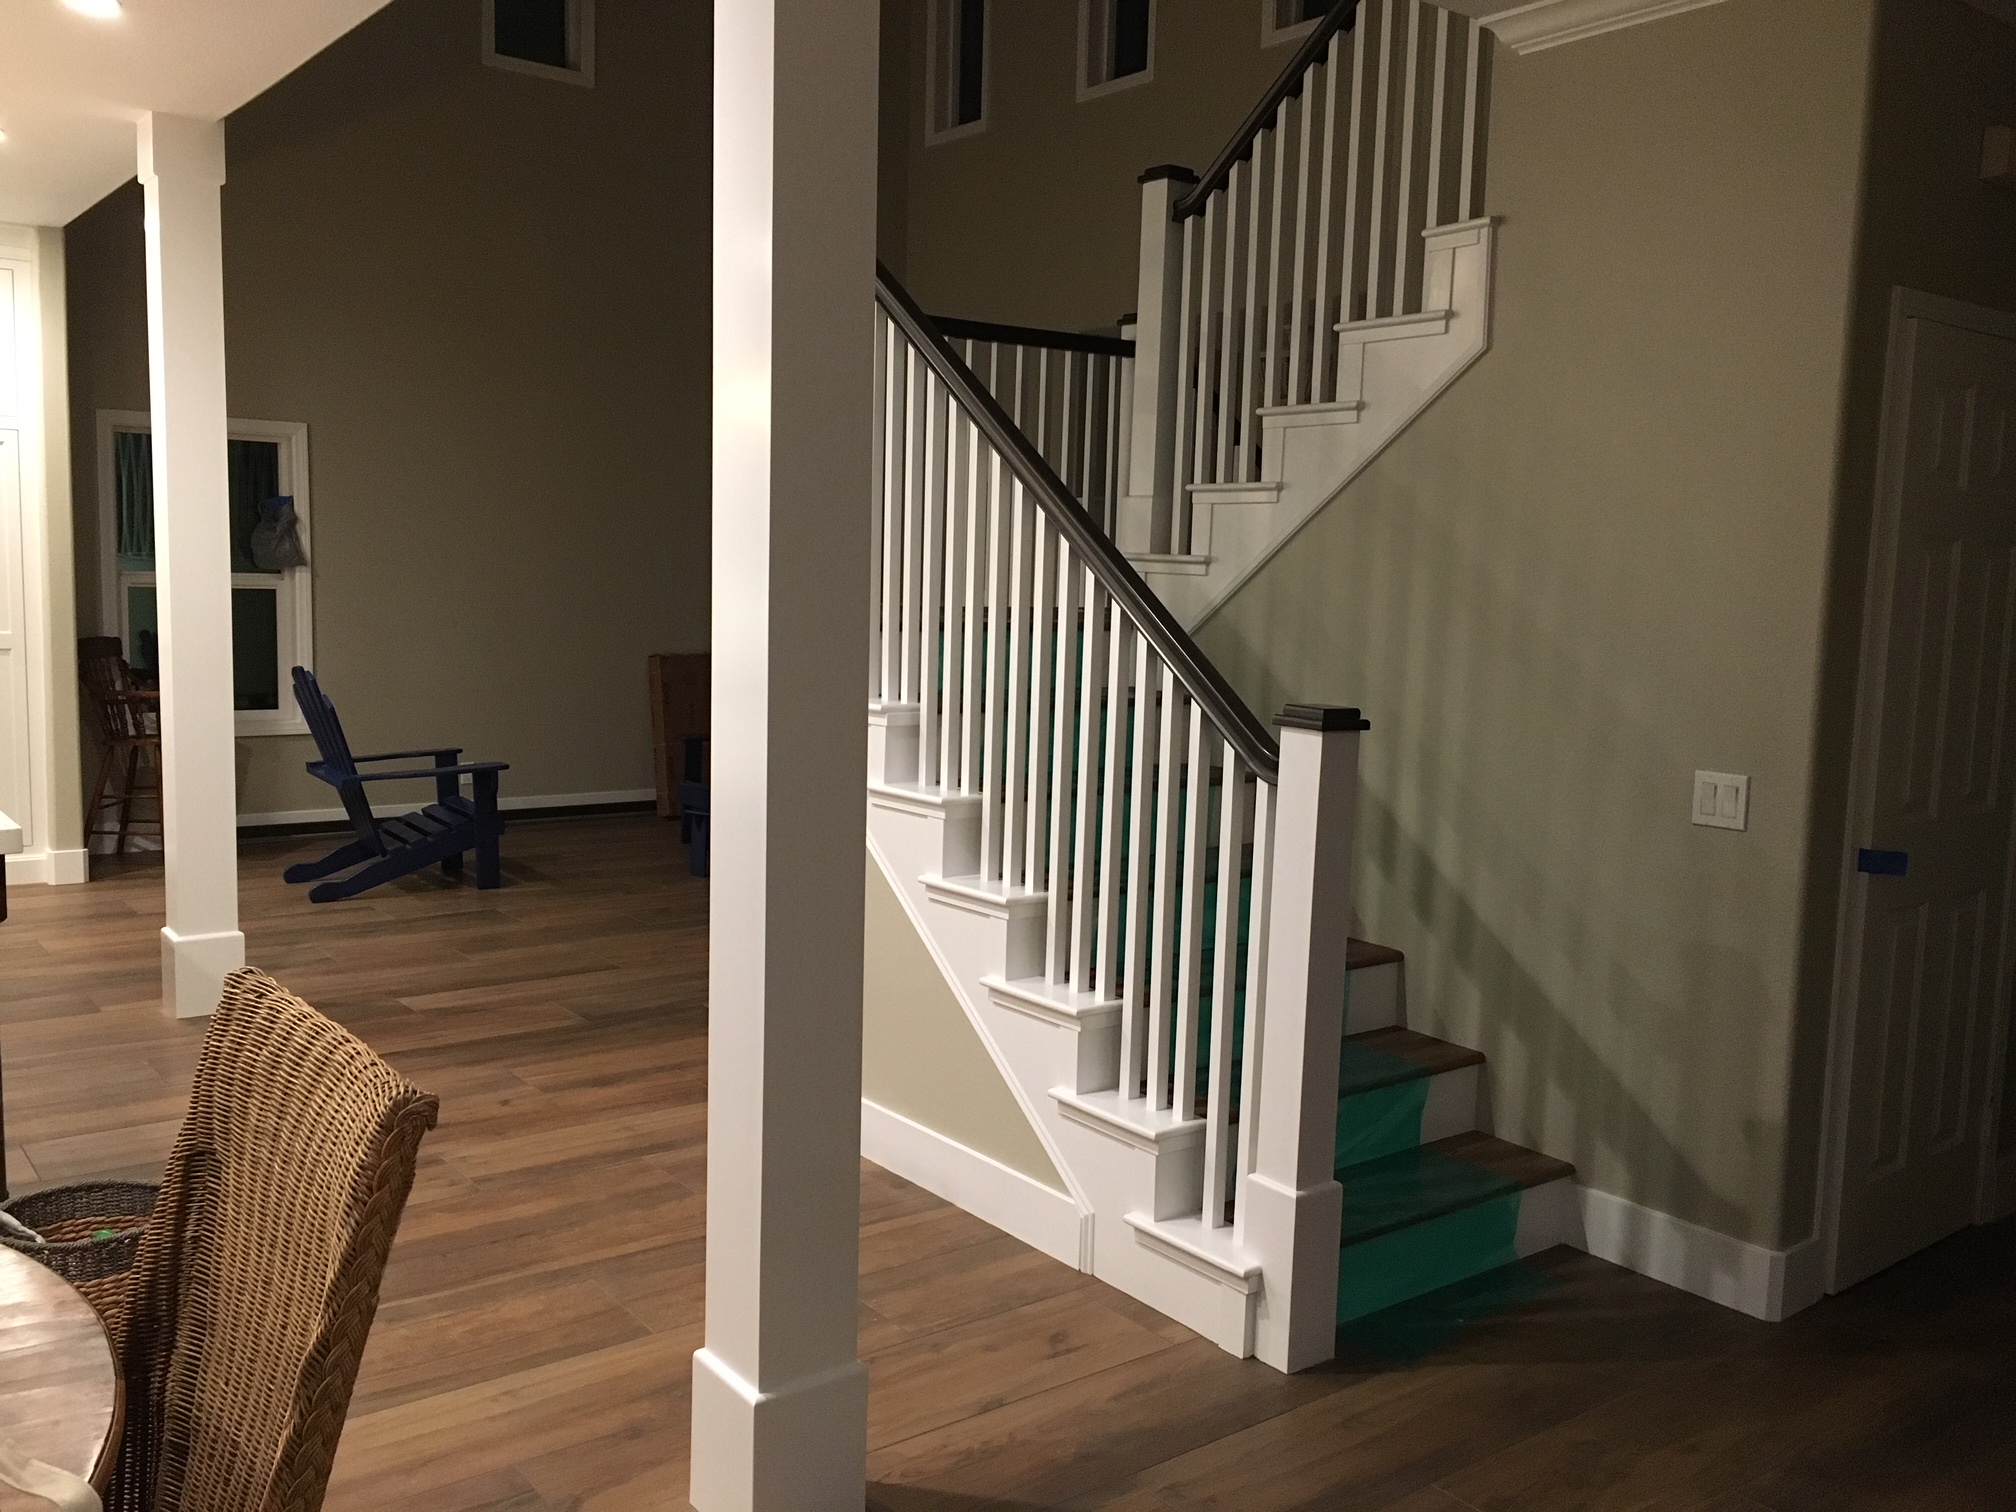 Picture of Before and After Photos - Stairs Complete